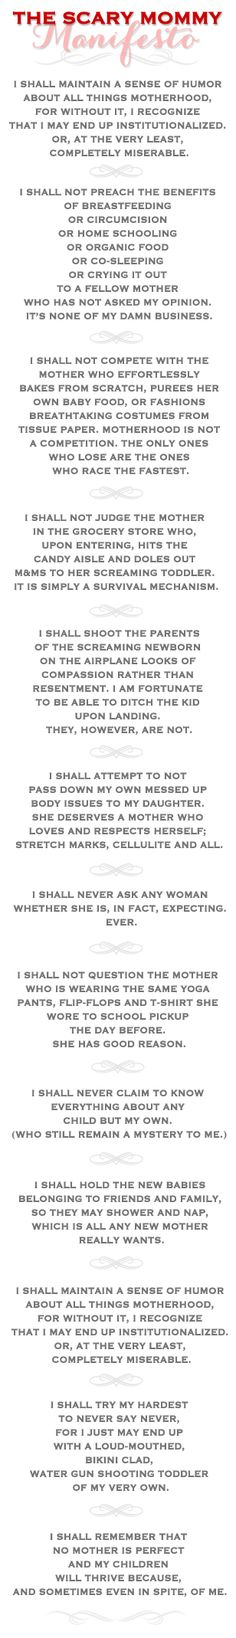 Scary Mommy Manifesto: I shall maintain a sense of humor about all things motherhood...